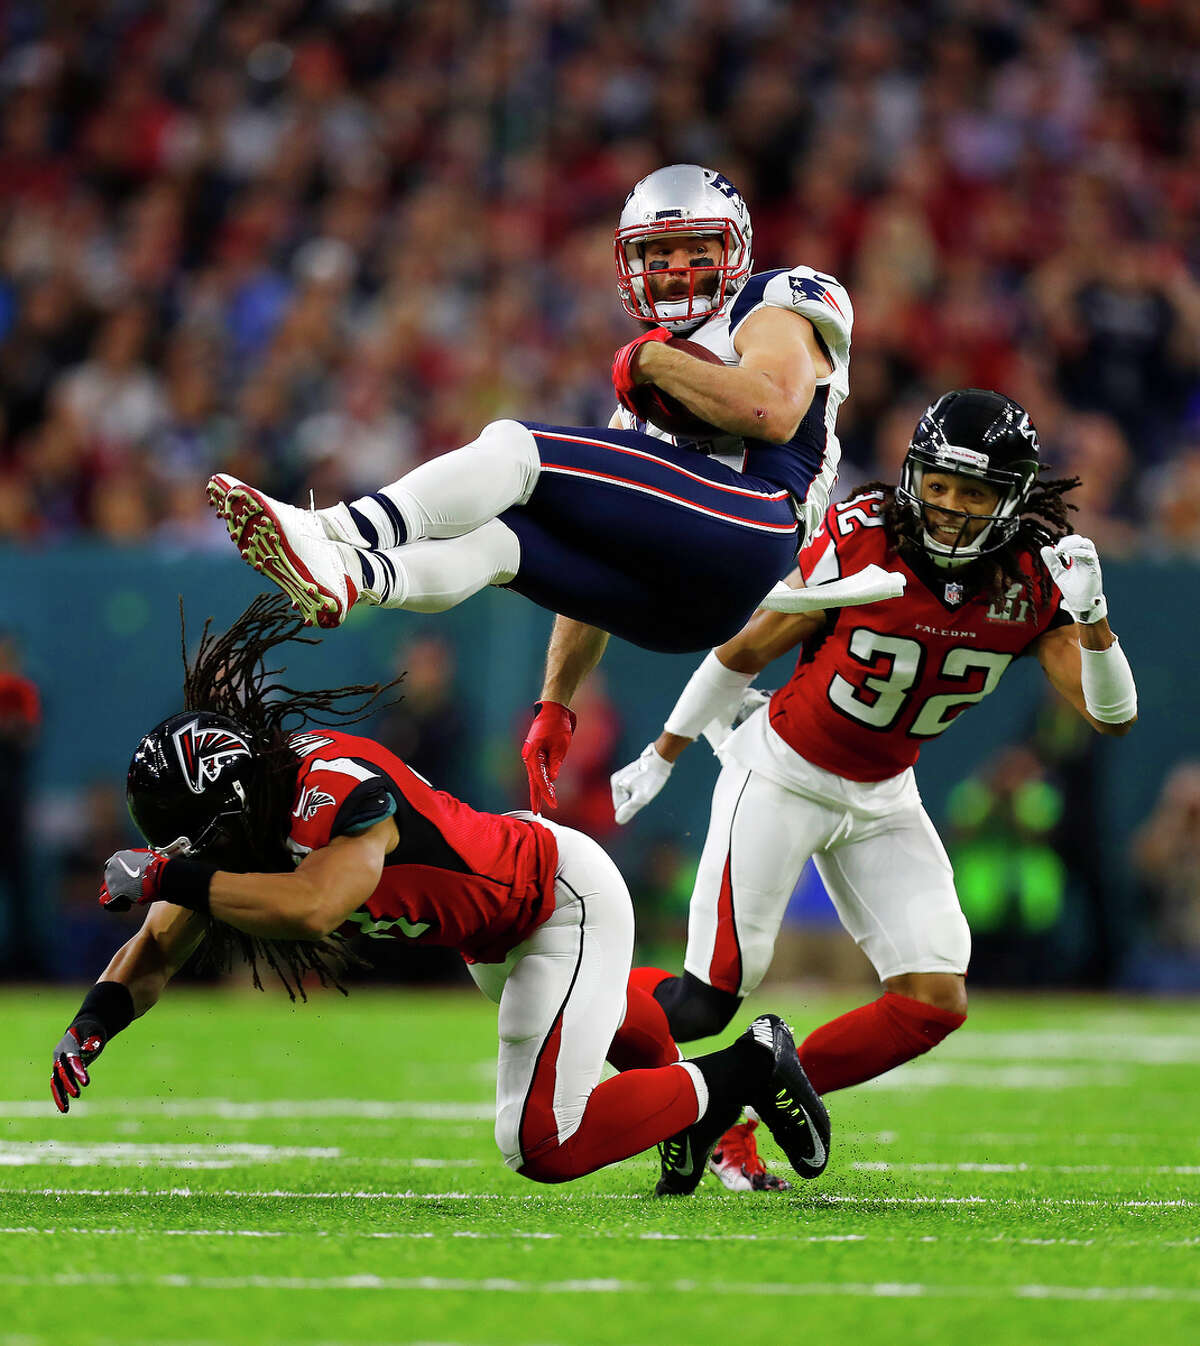 New England Patriots wide receiver Julian Edelman center, is upended during the first quarter of Super Bowl LI at NRG Stadium on Sunday, February 5, 2017. ( Karen Warren / Houston Chronicle )